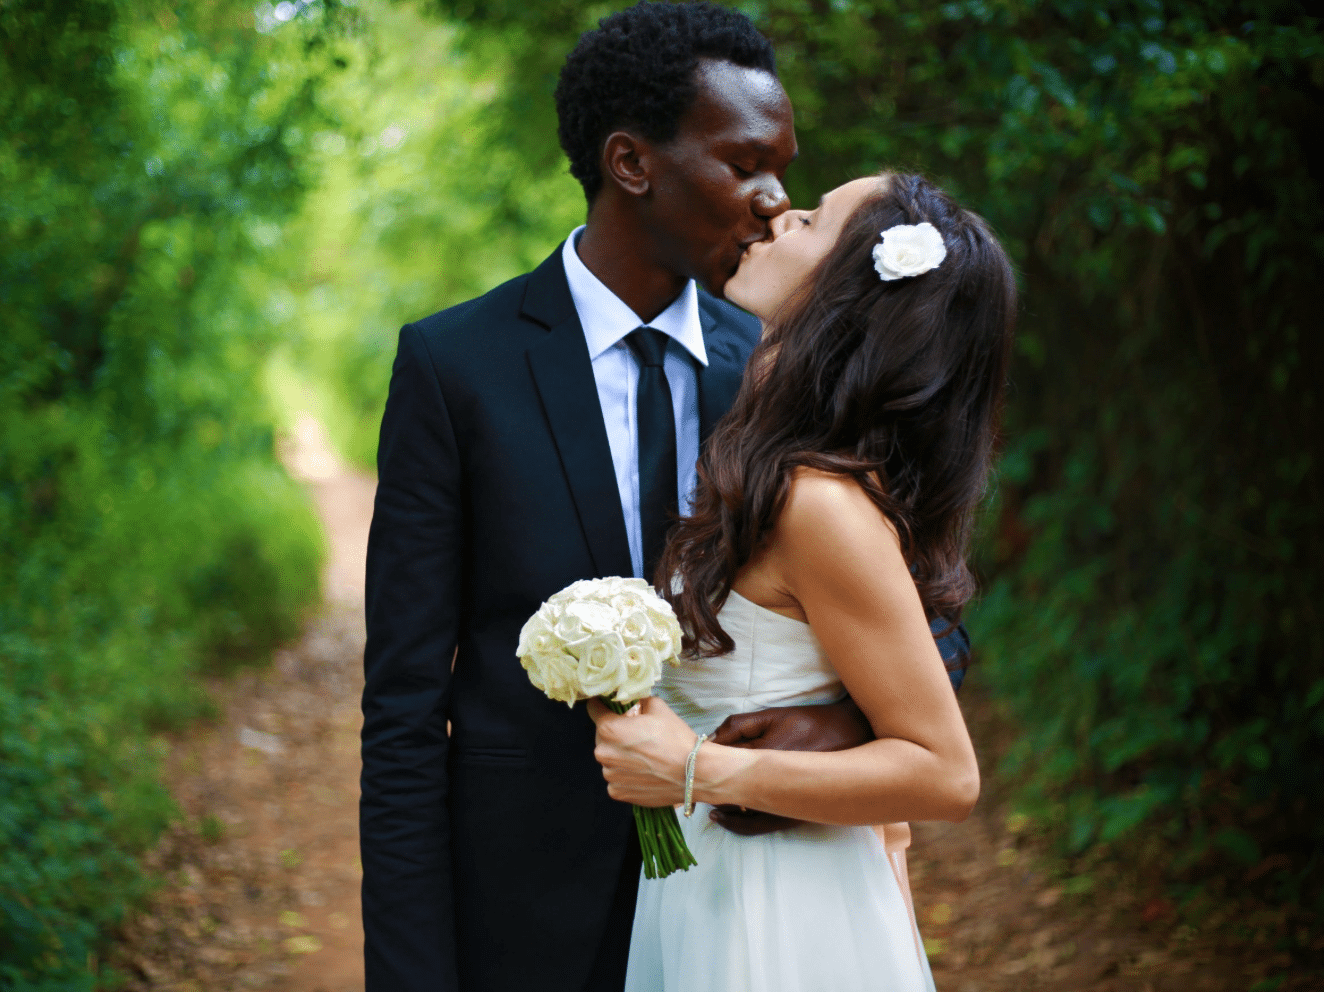 6 simple, everyday ways to make your marriage stronger than ever